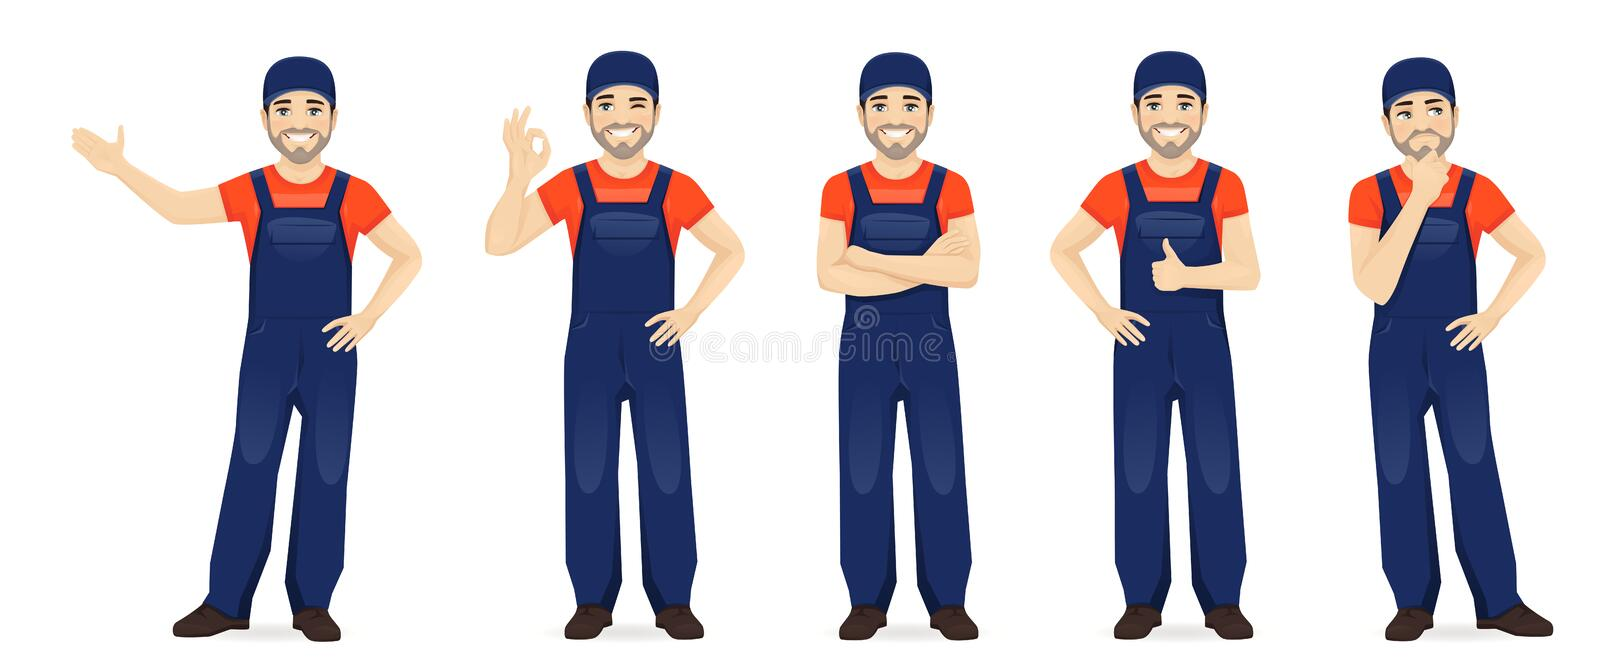 Man in overalls. Man in blue overalls set with different gestures isolated vector illustration royalty free illustration